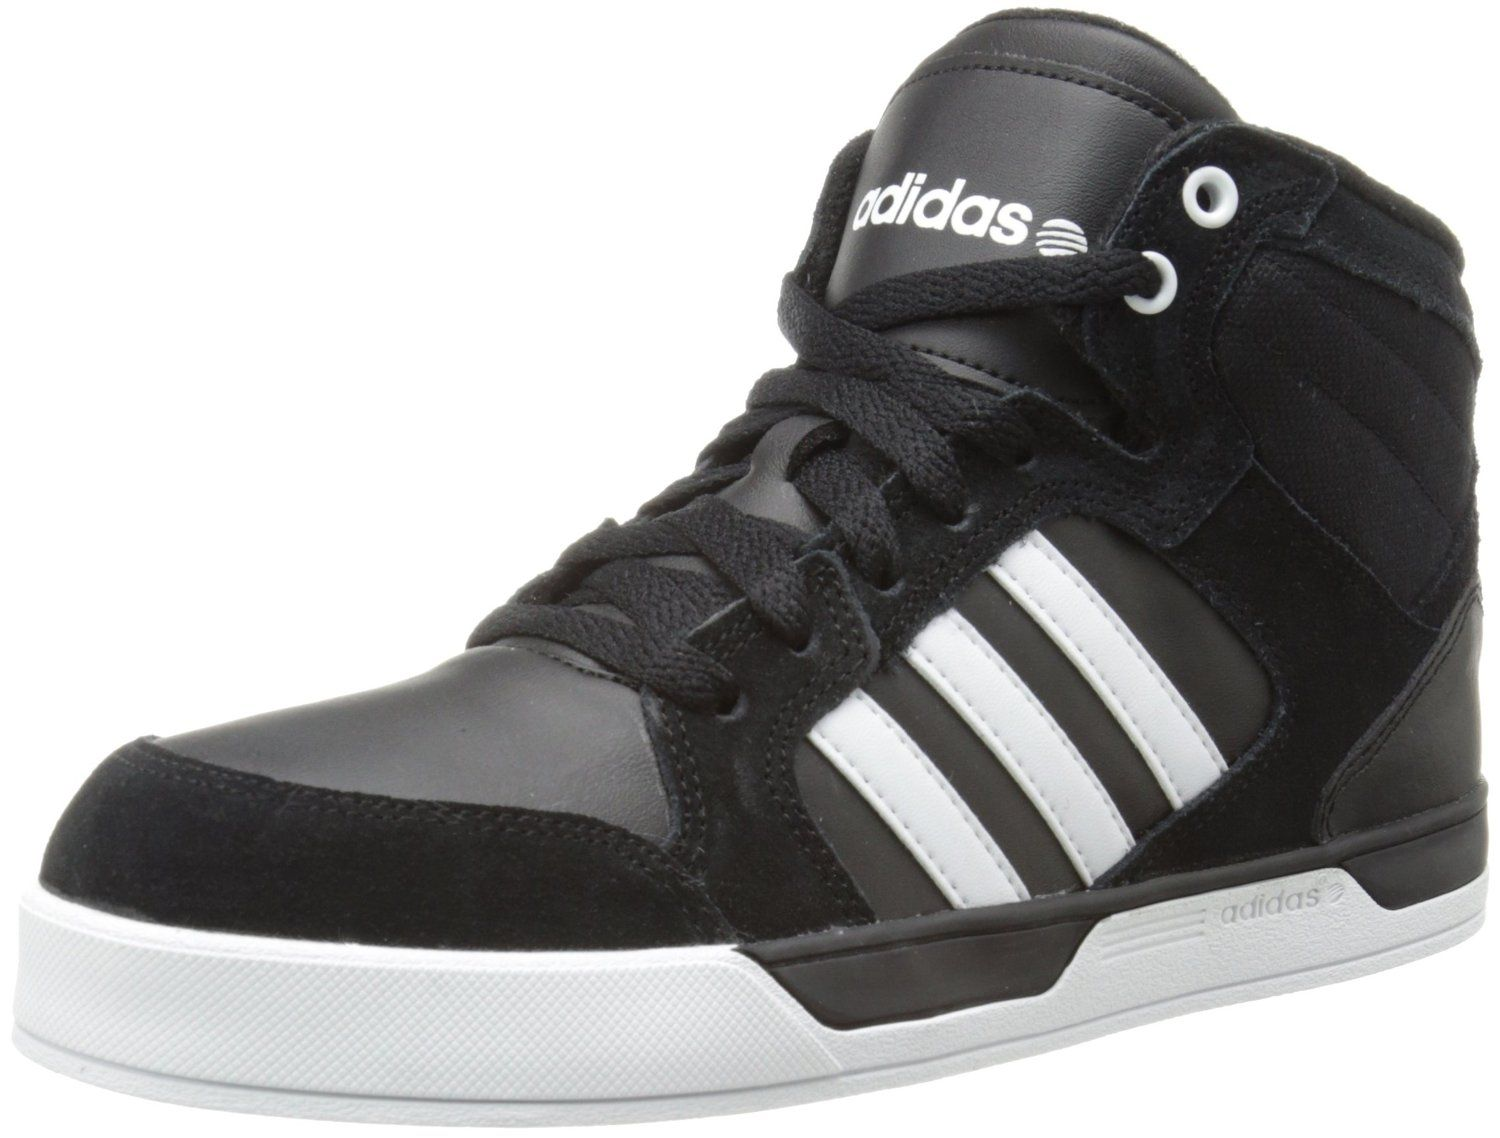 Sneakers, Girls shoes, Adidas